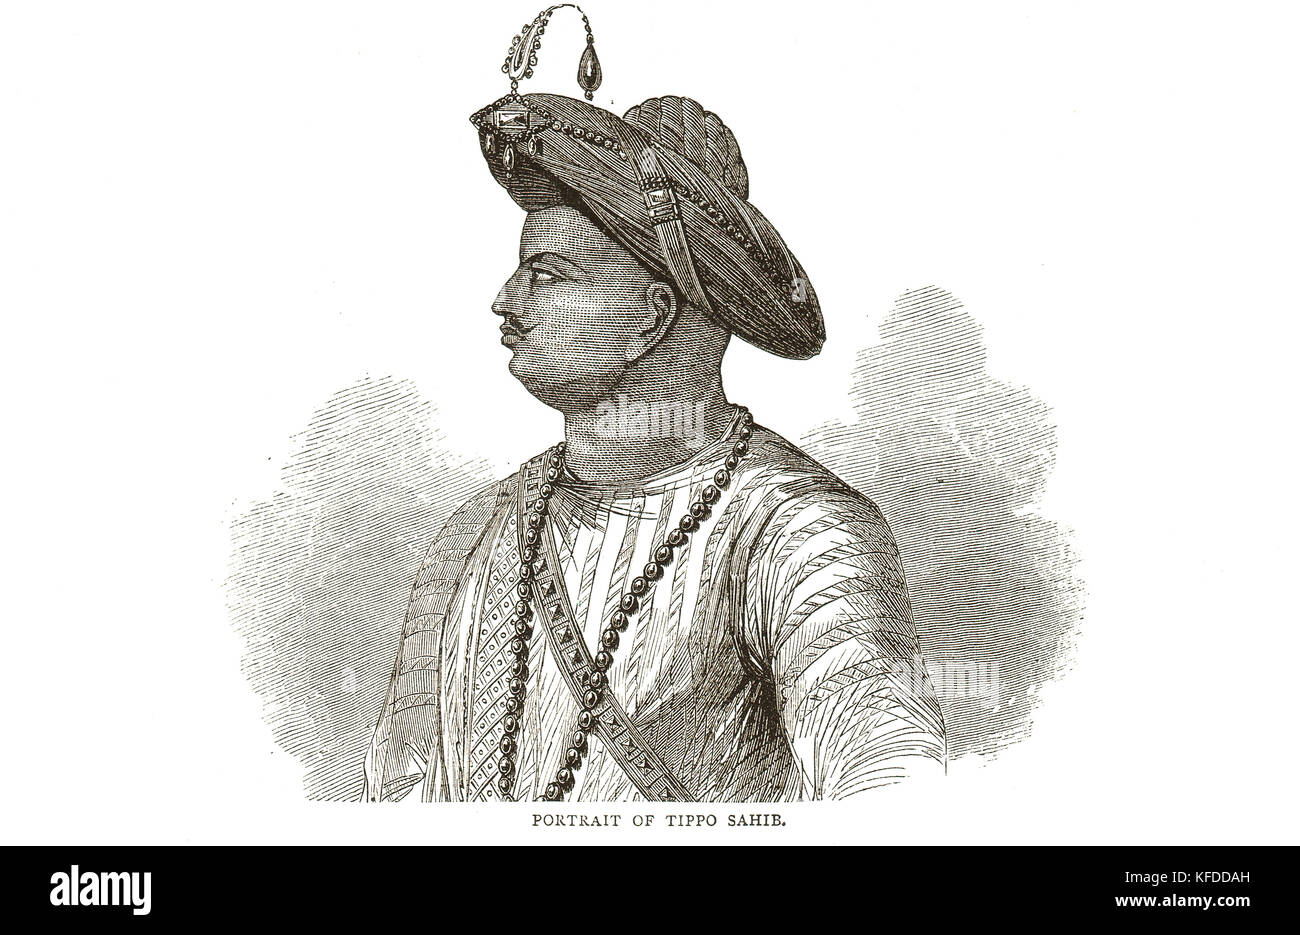 how to meet tipu sultan